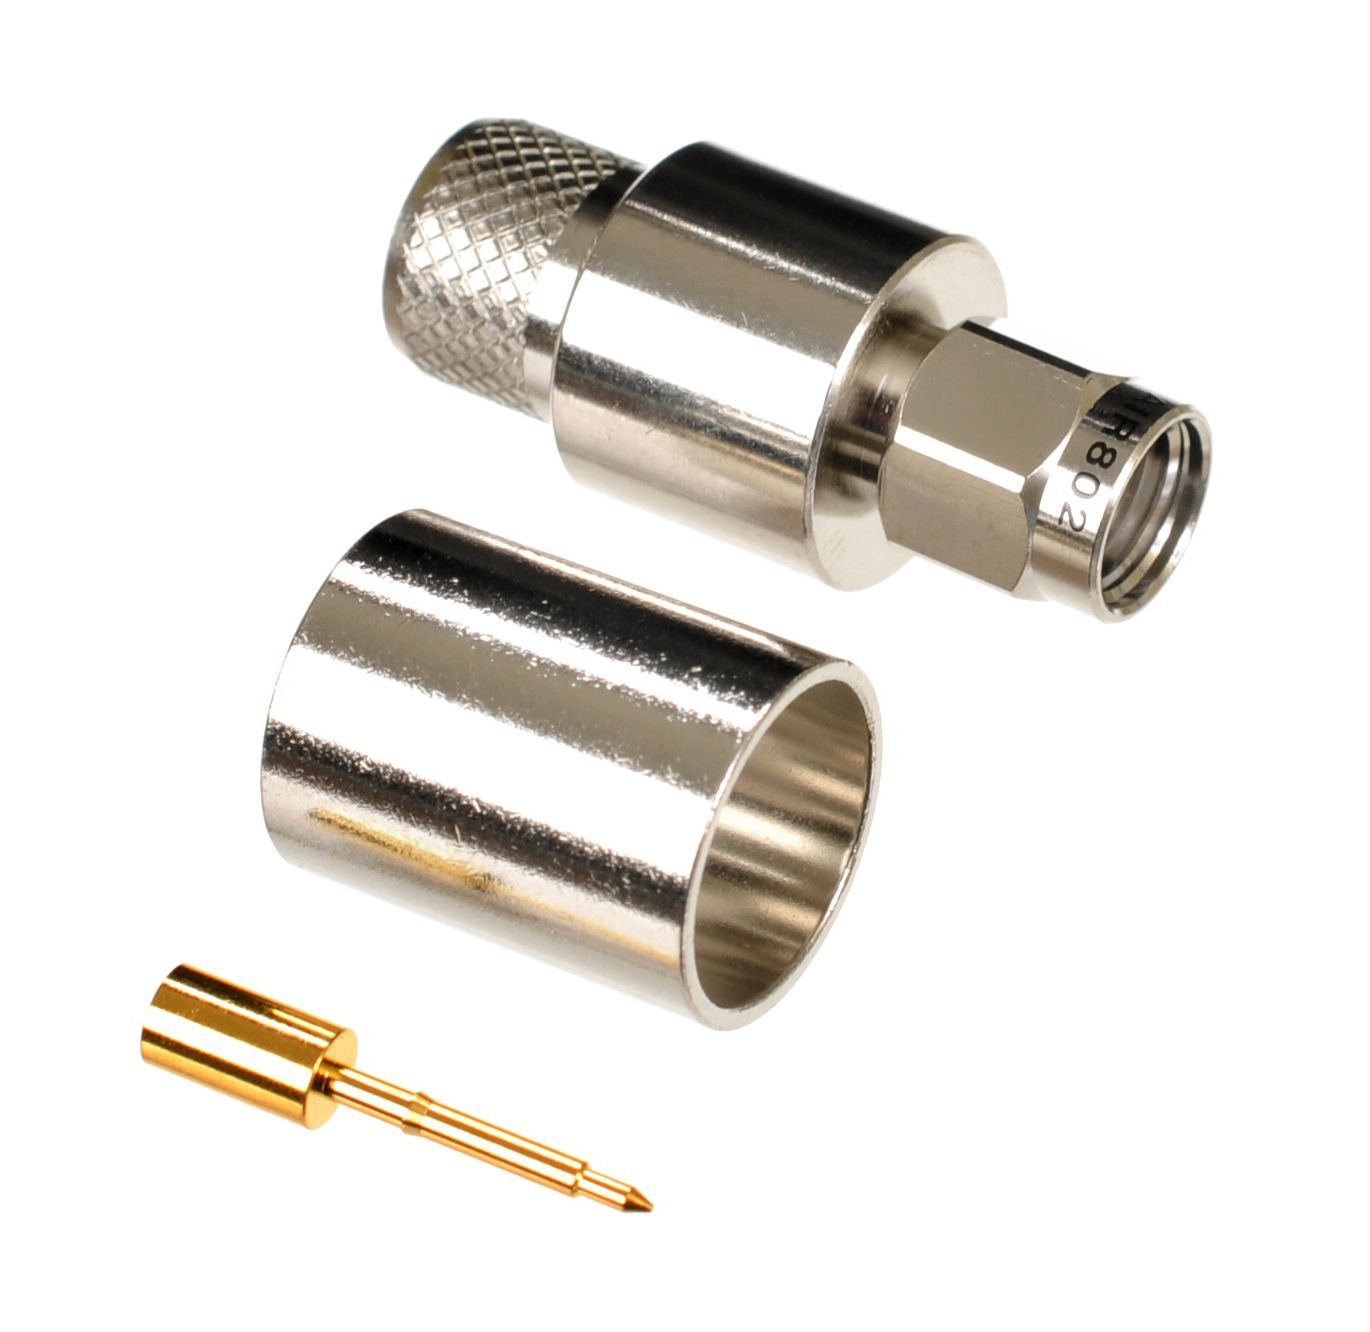 SMA plug or male connector for CA400, LMR400 and Belden 9913 size coaxial cables.